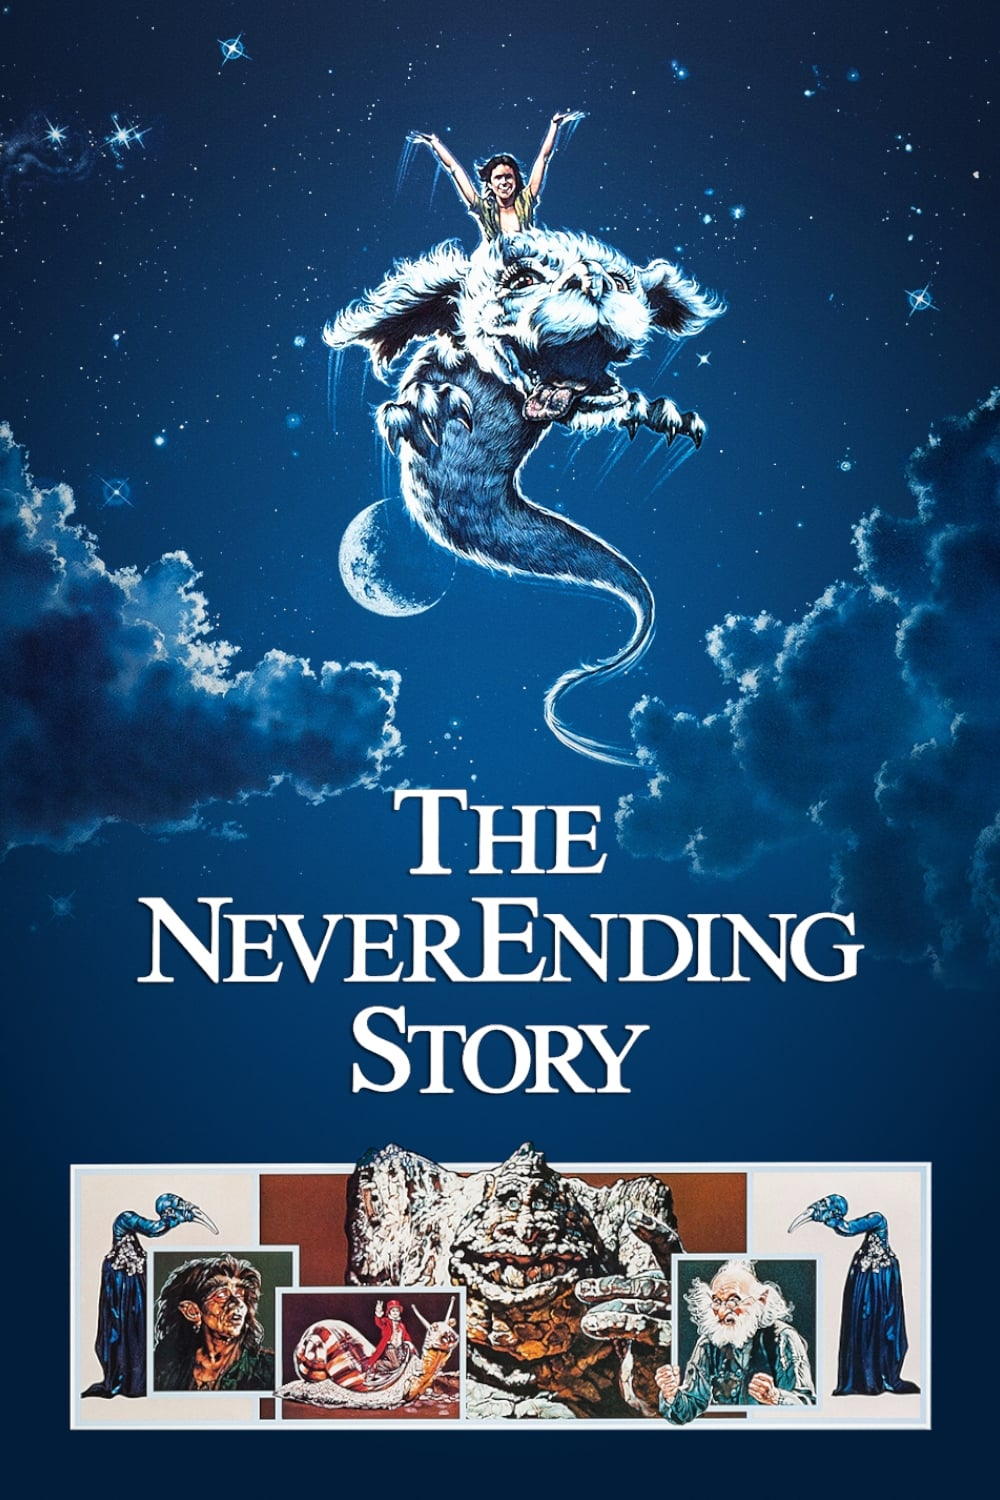 Poster for Carl's Movie Night: The NeverEnding Story (Carl's Movie Night)